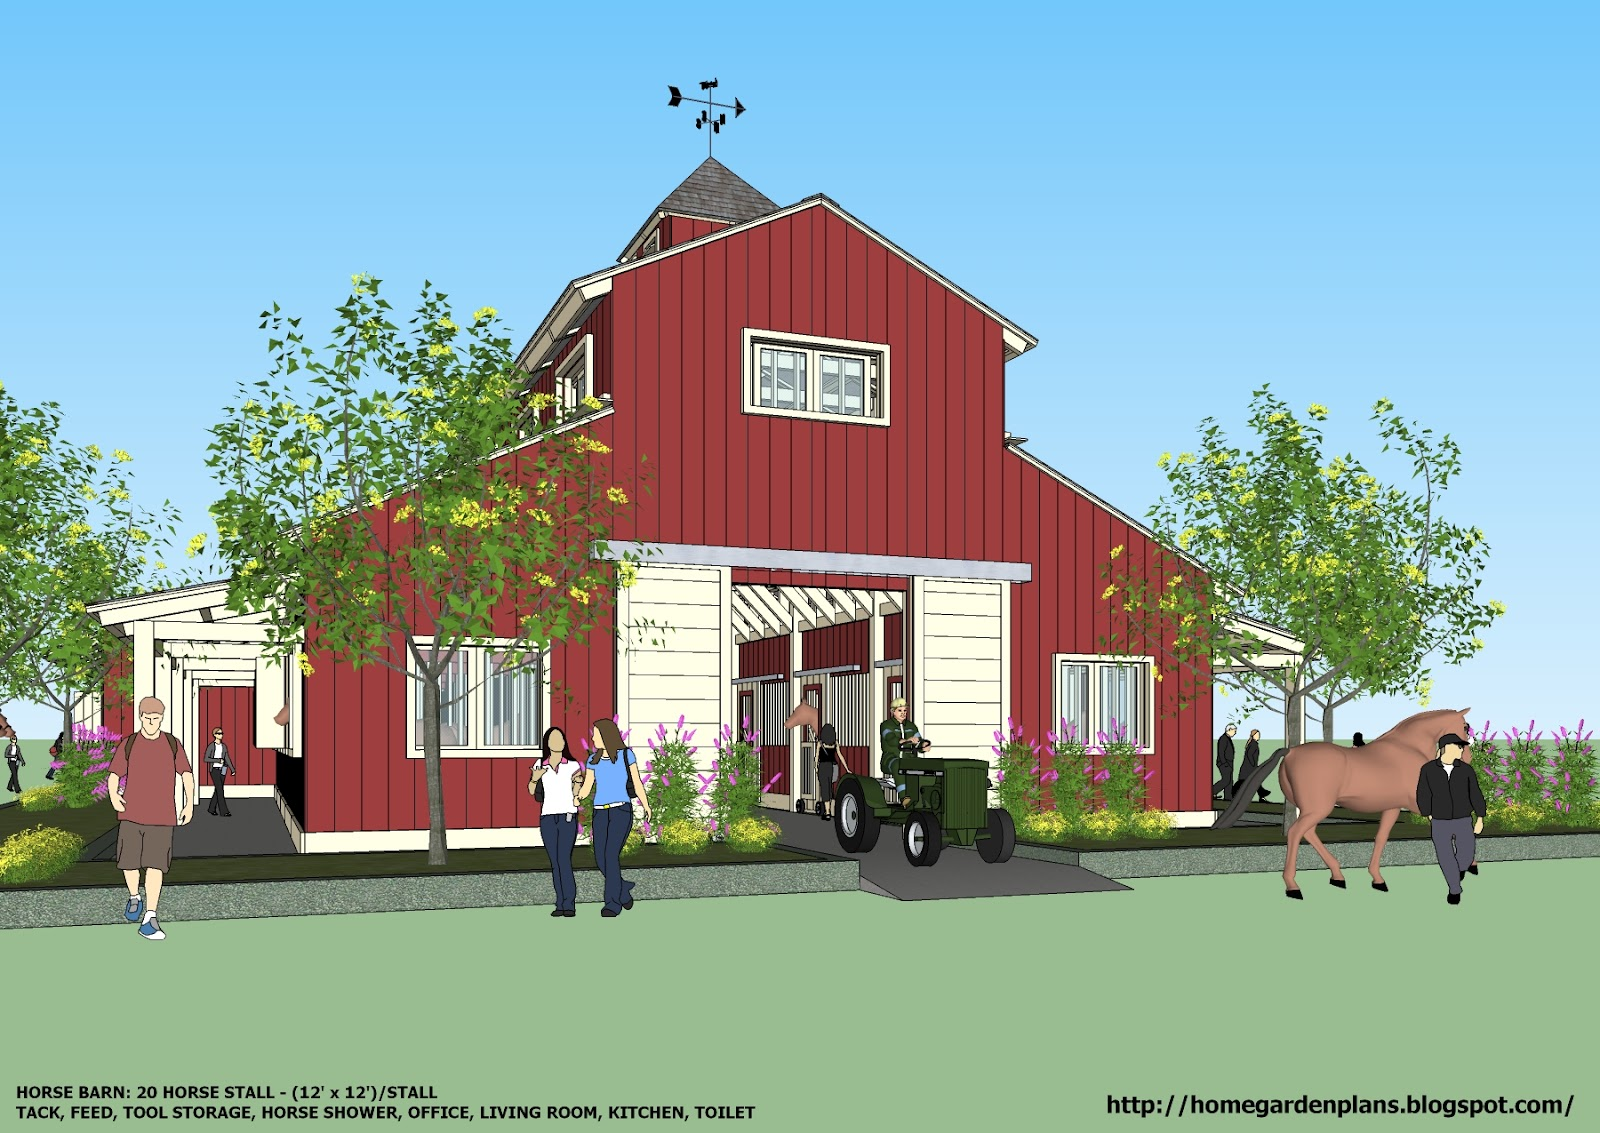 Home garden plans b20h large horse barn for 20 horse for Barn house blueprints